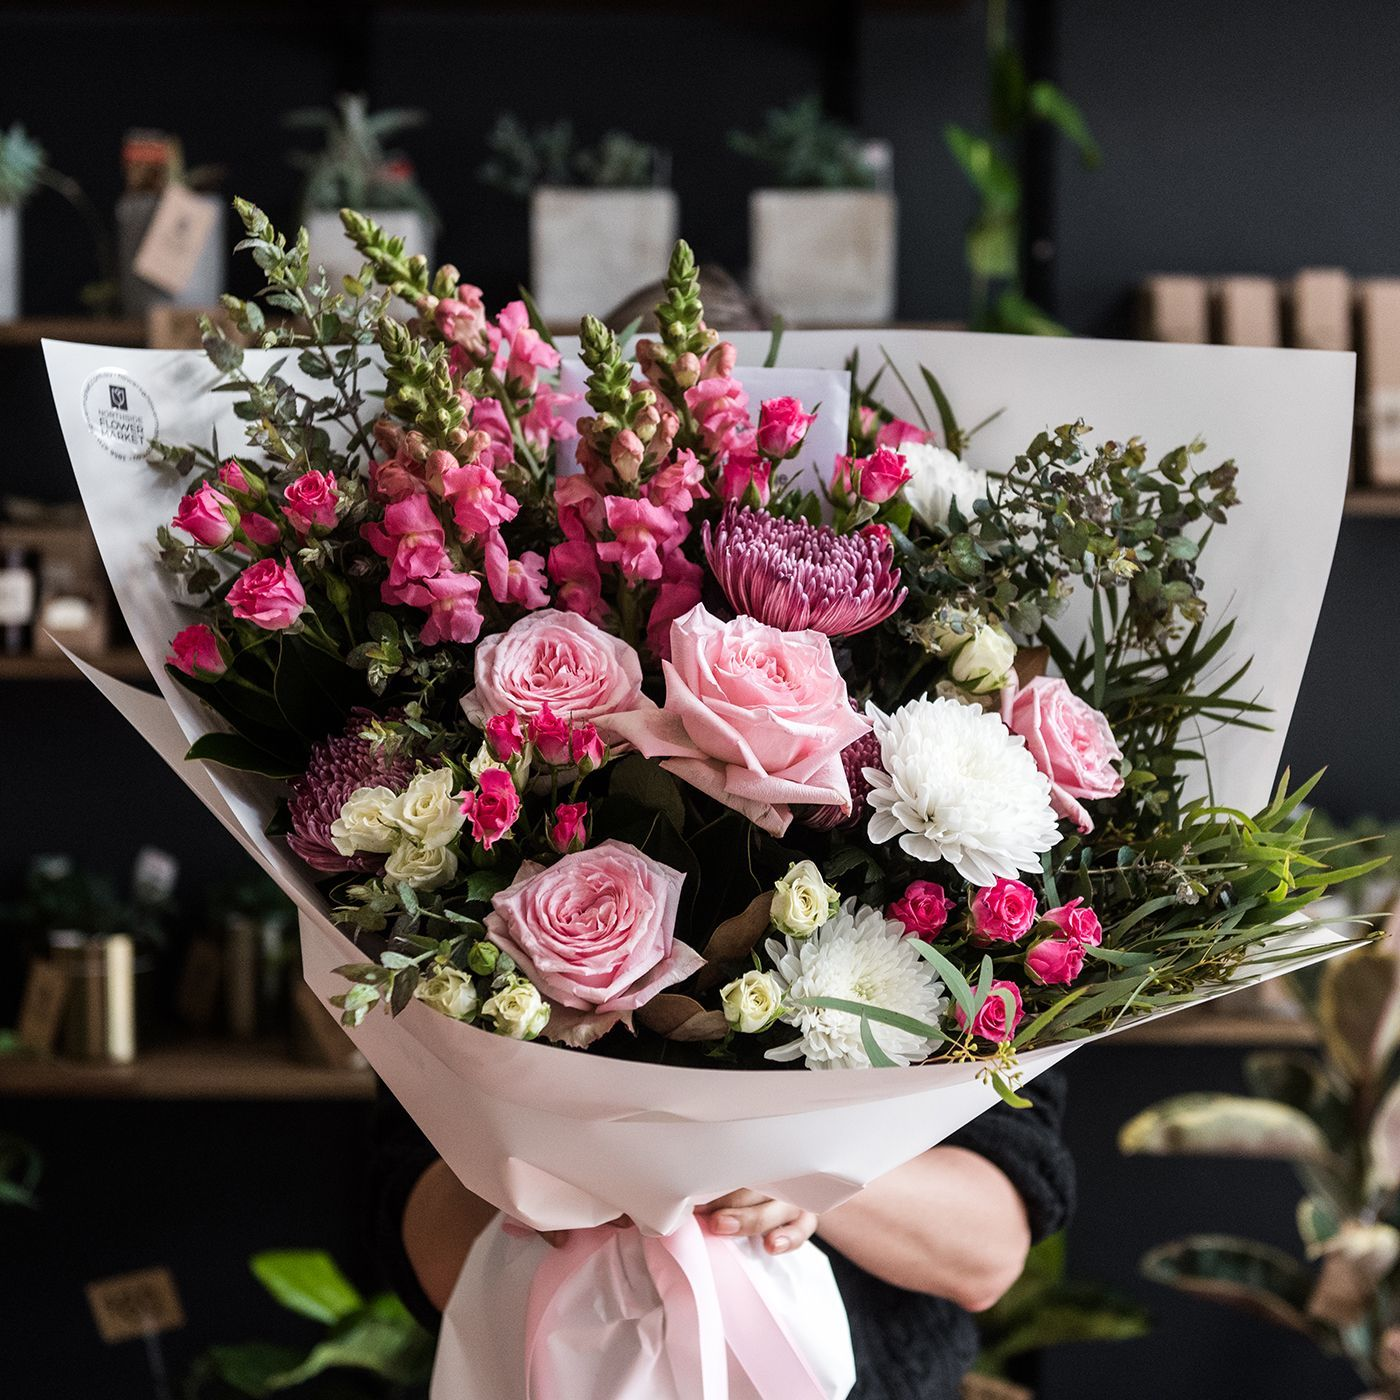 We All Know Someone Who Would Love This Incredibly Epic Designer Bouquet Beautiful Bouquet Of Flowers Flower Market Bouquet Arrangements